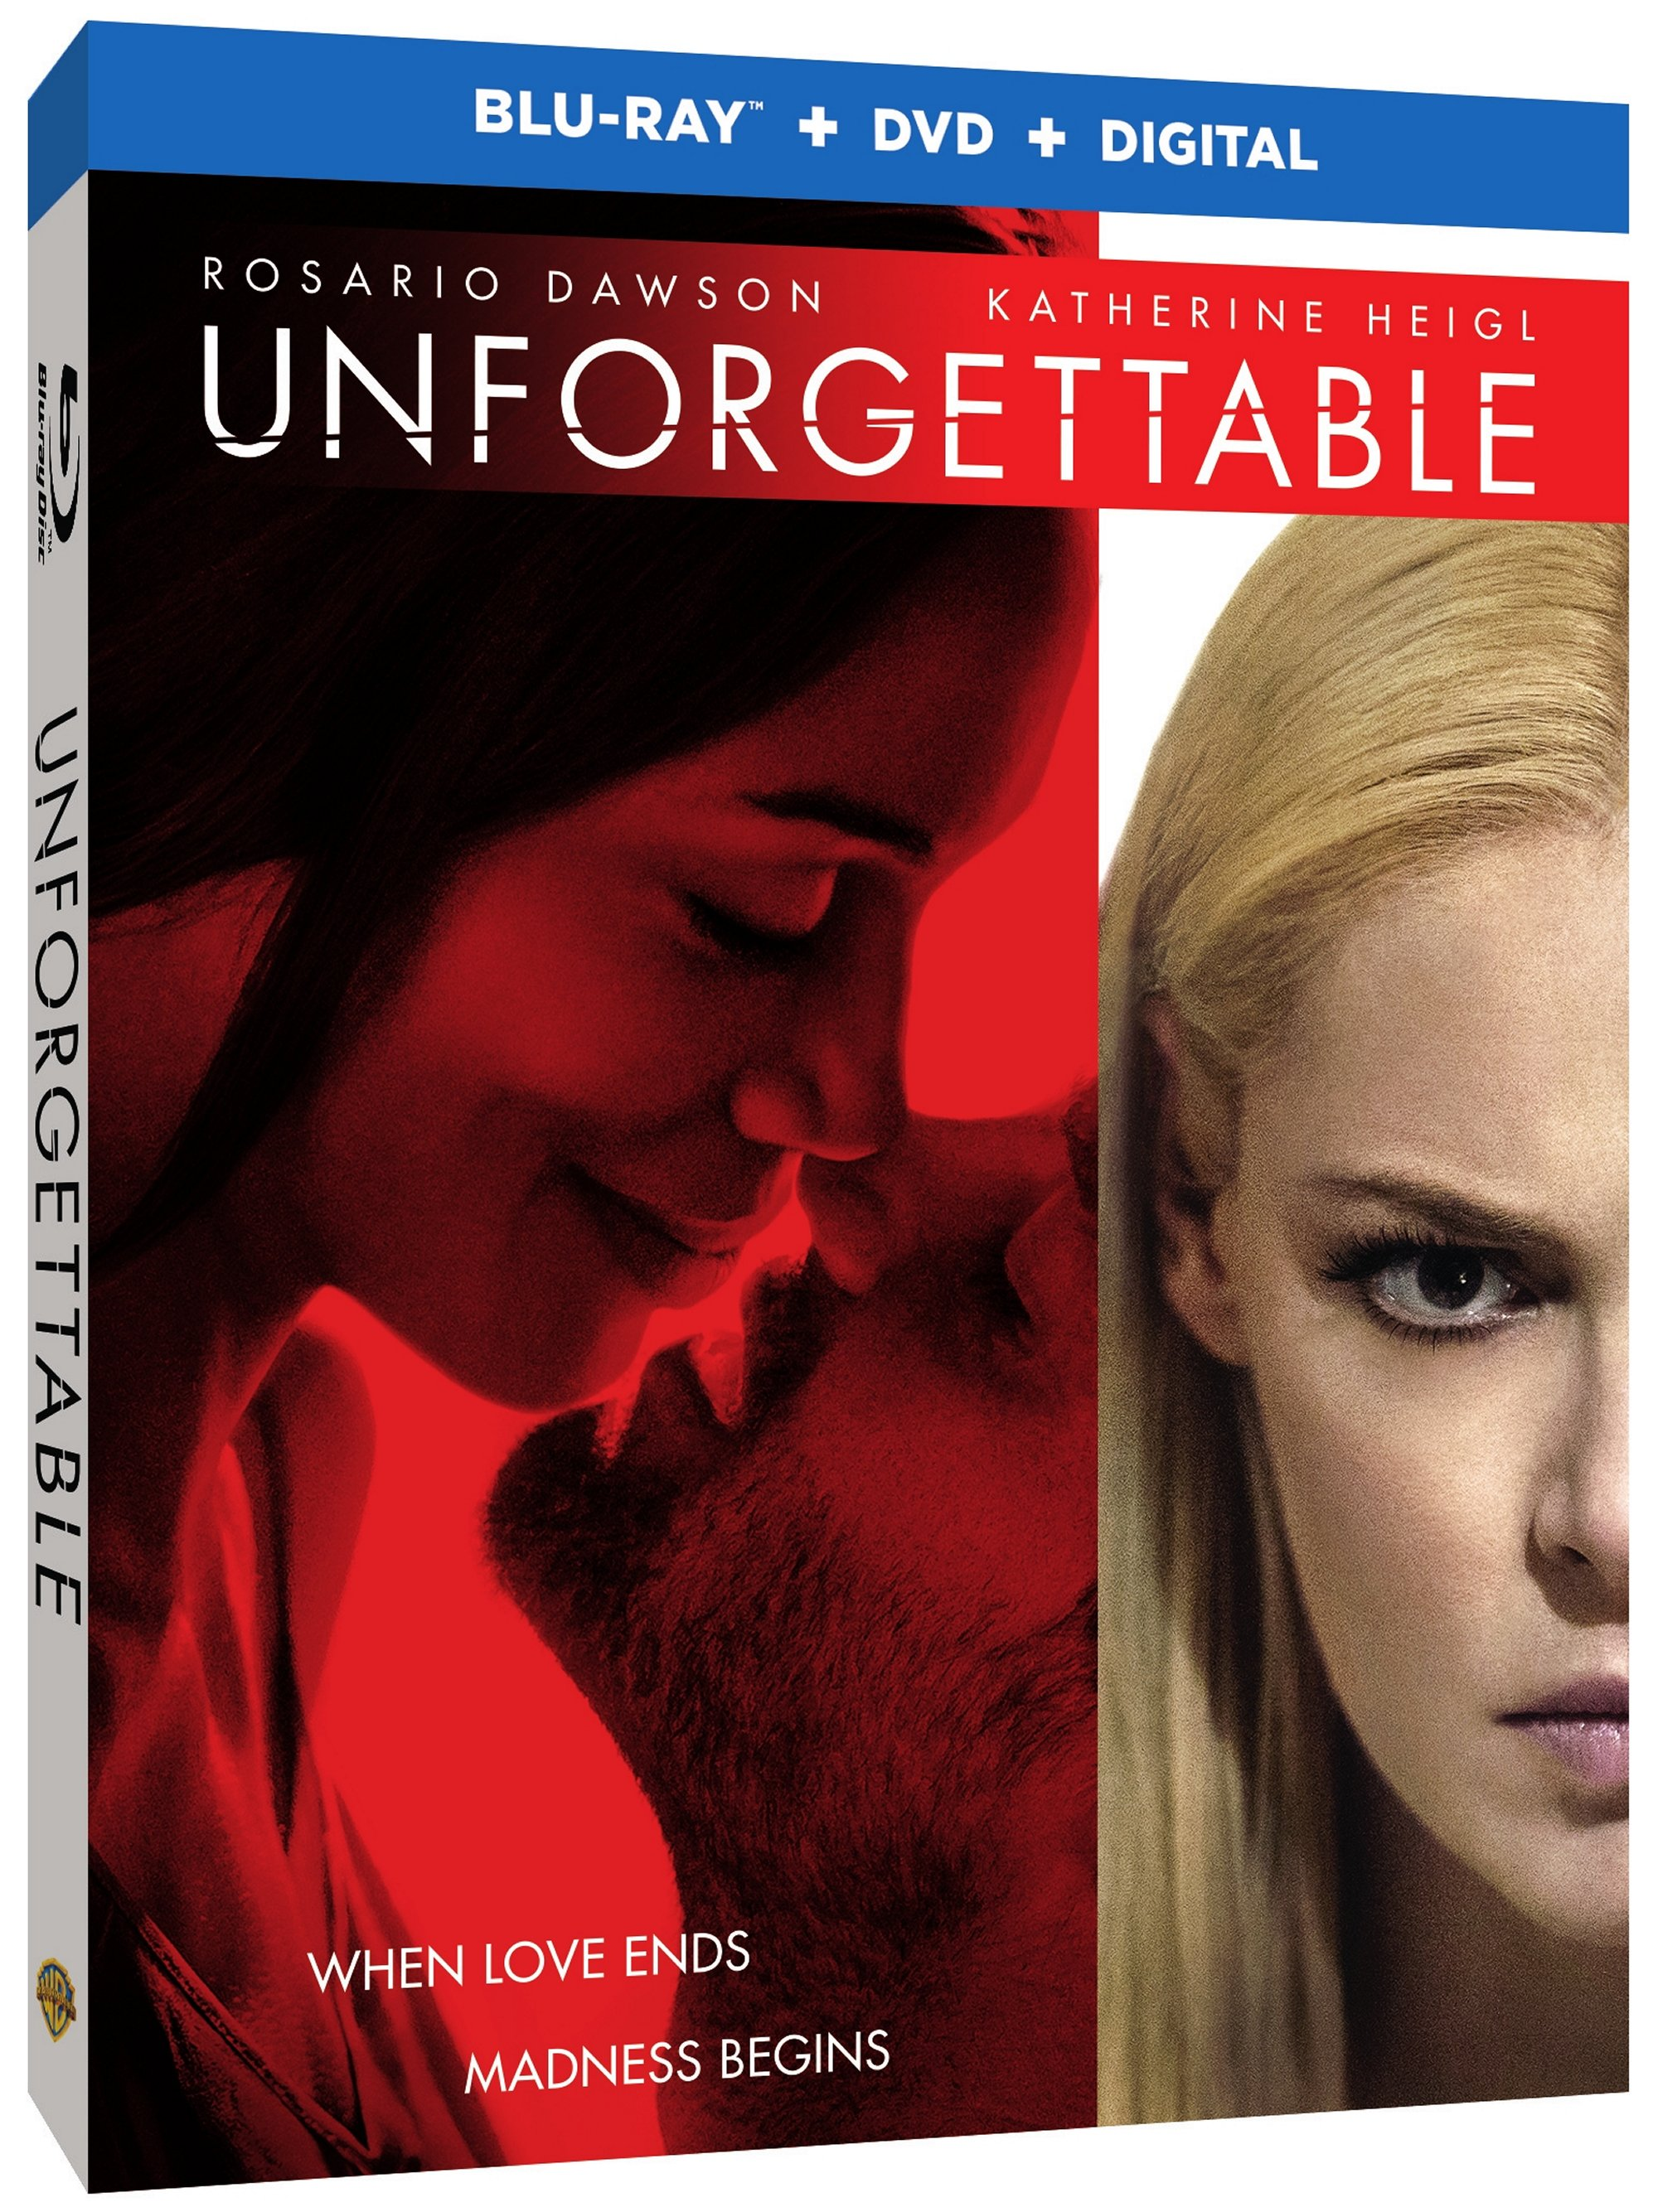 UNFORGETTABLE Blu-ray